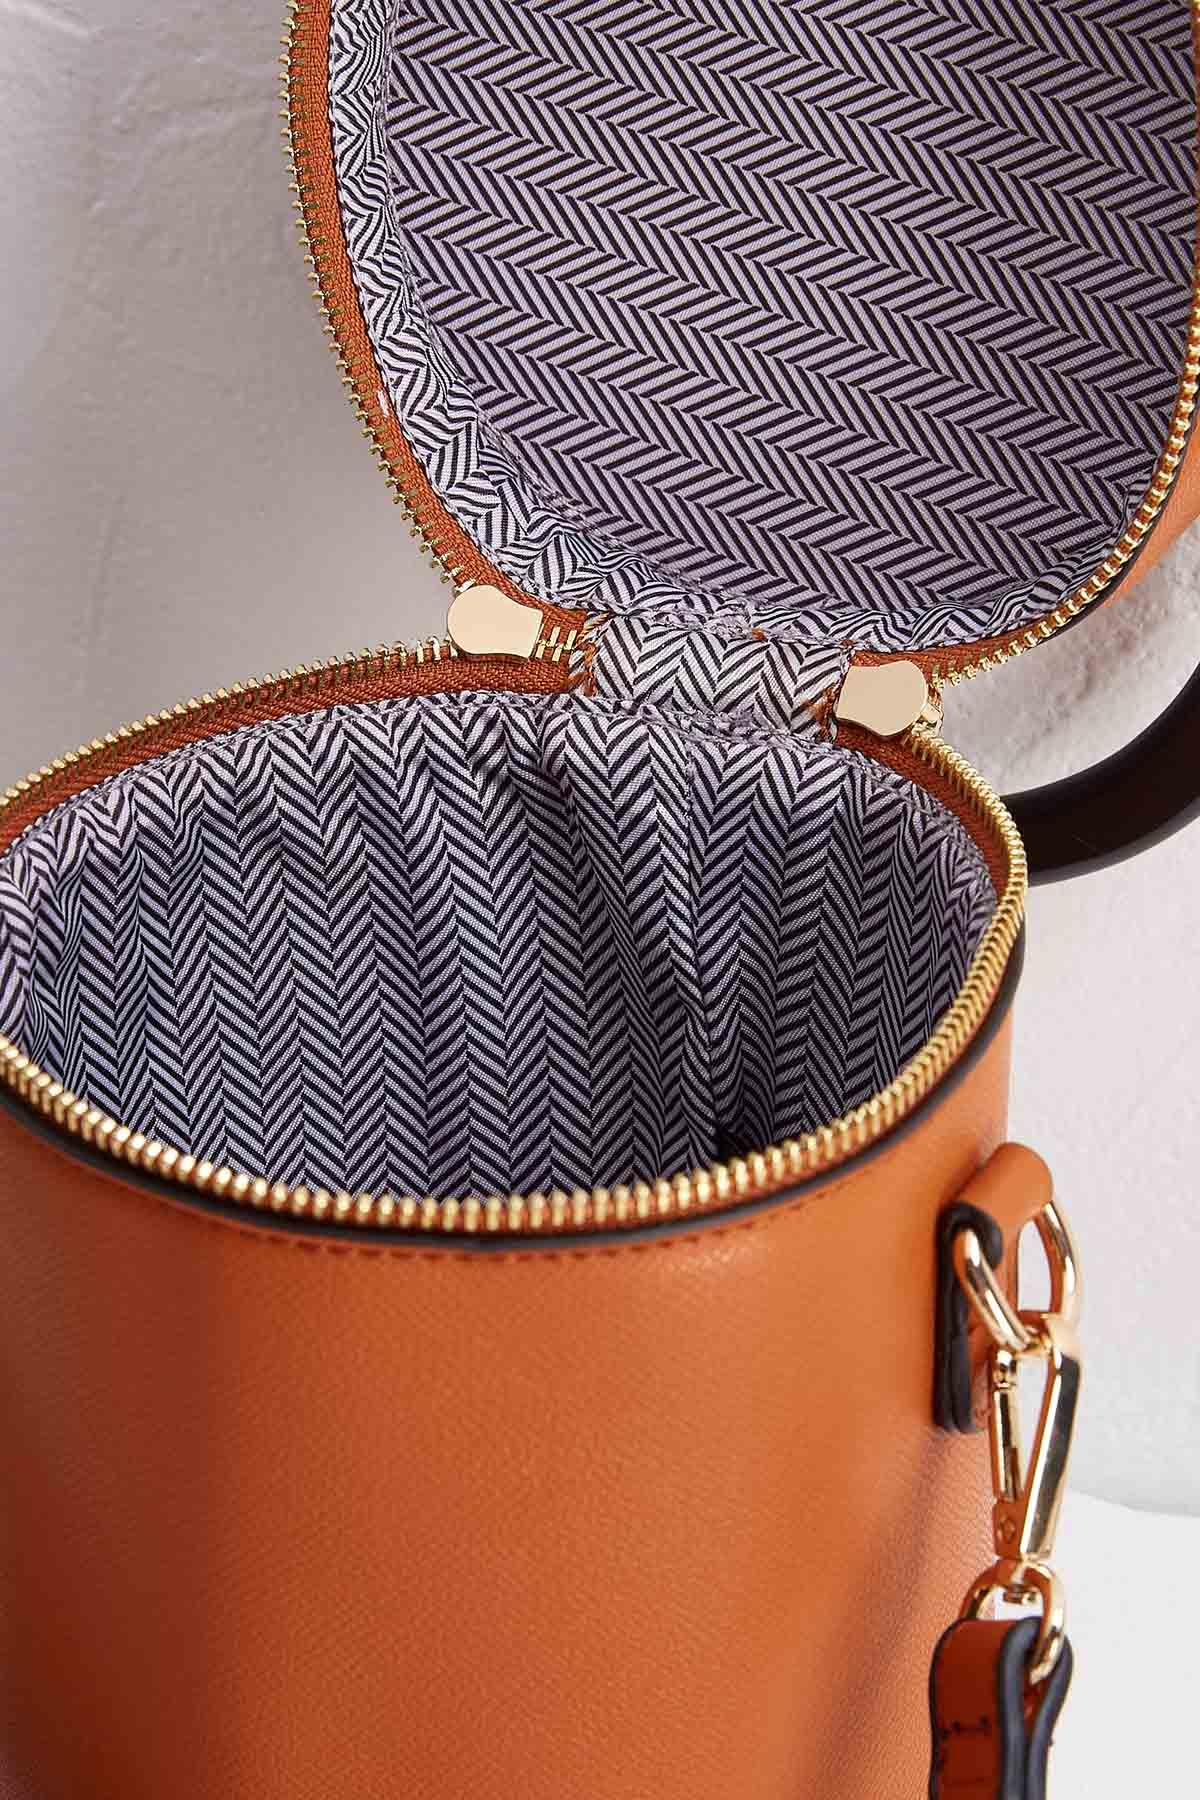 Cylinder Shaped Handbag